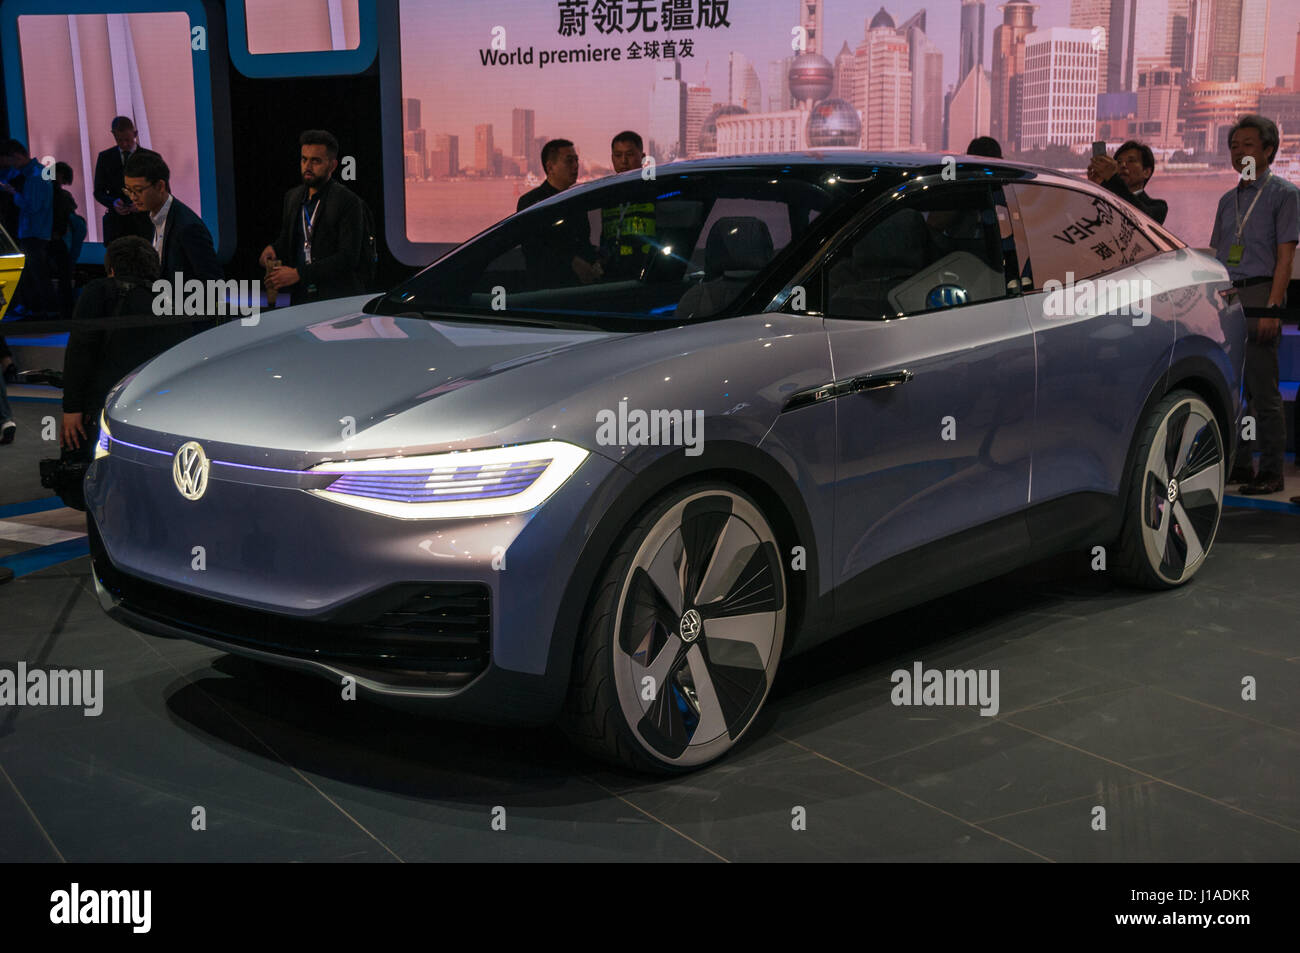 Shanghai, China. 19th April, 2017. Volkswagen ID SUV electric vehicle concept on the 2017 Shanghai Auto Show Credit: - Stock Image